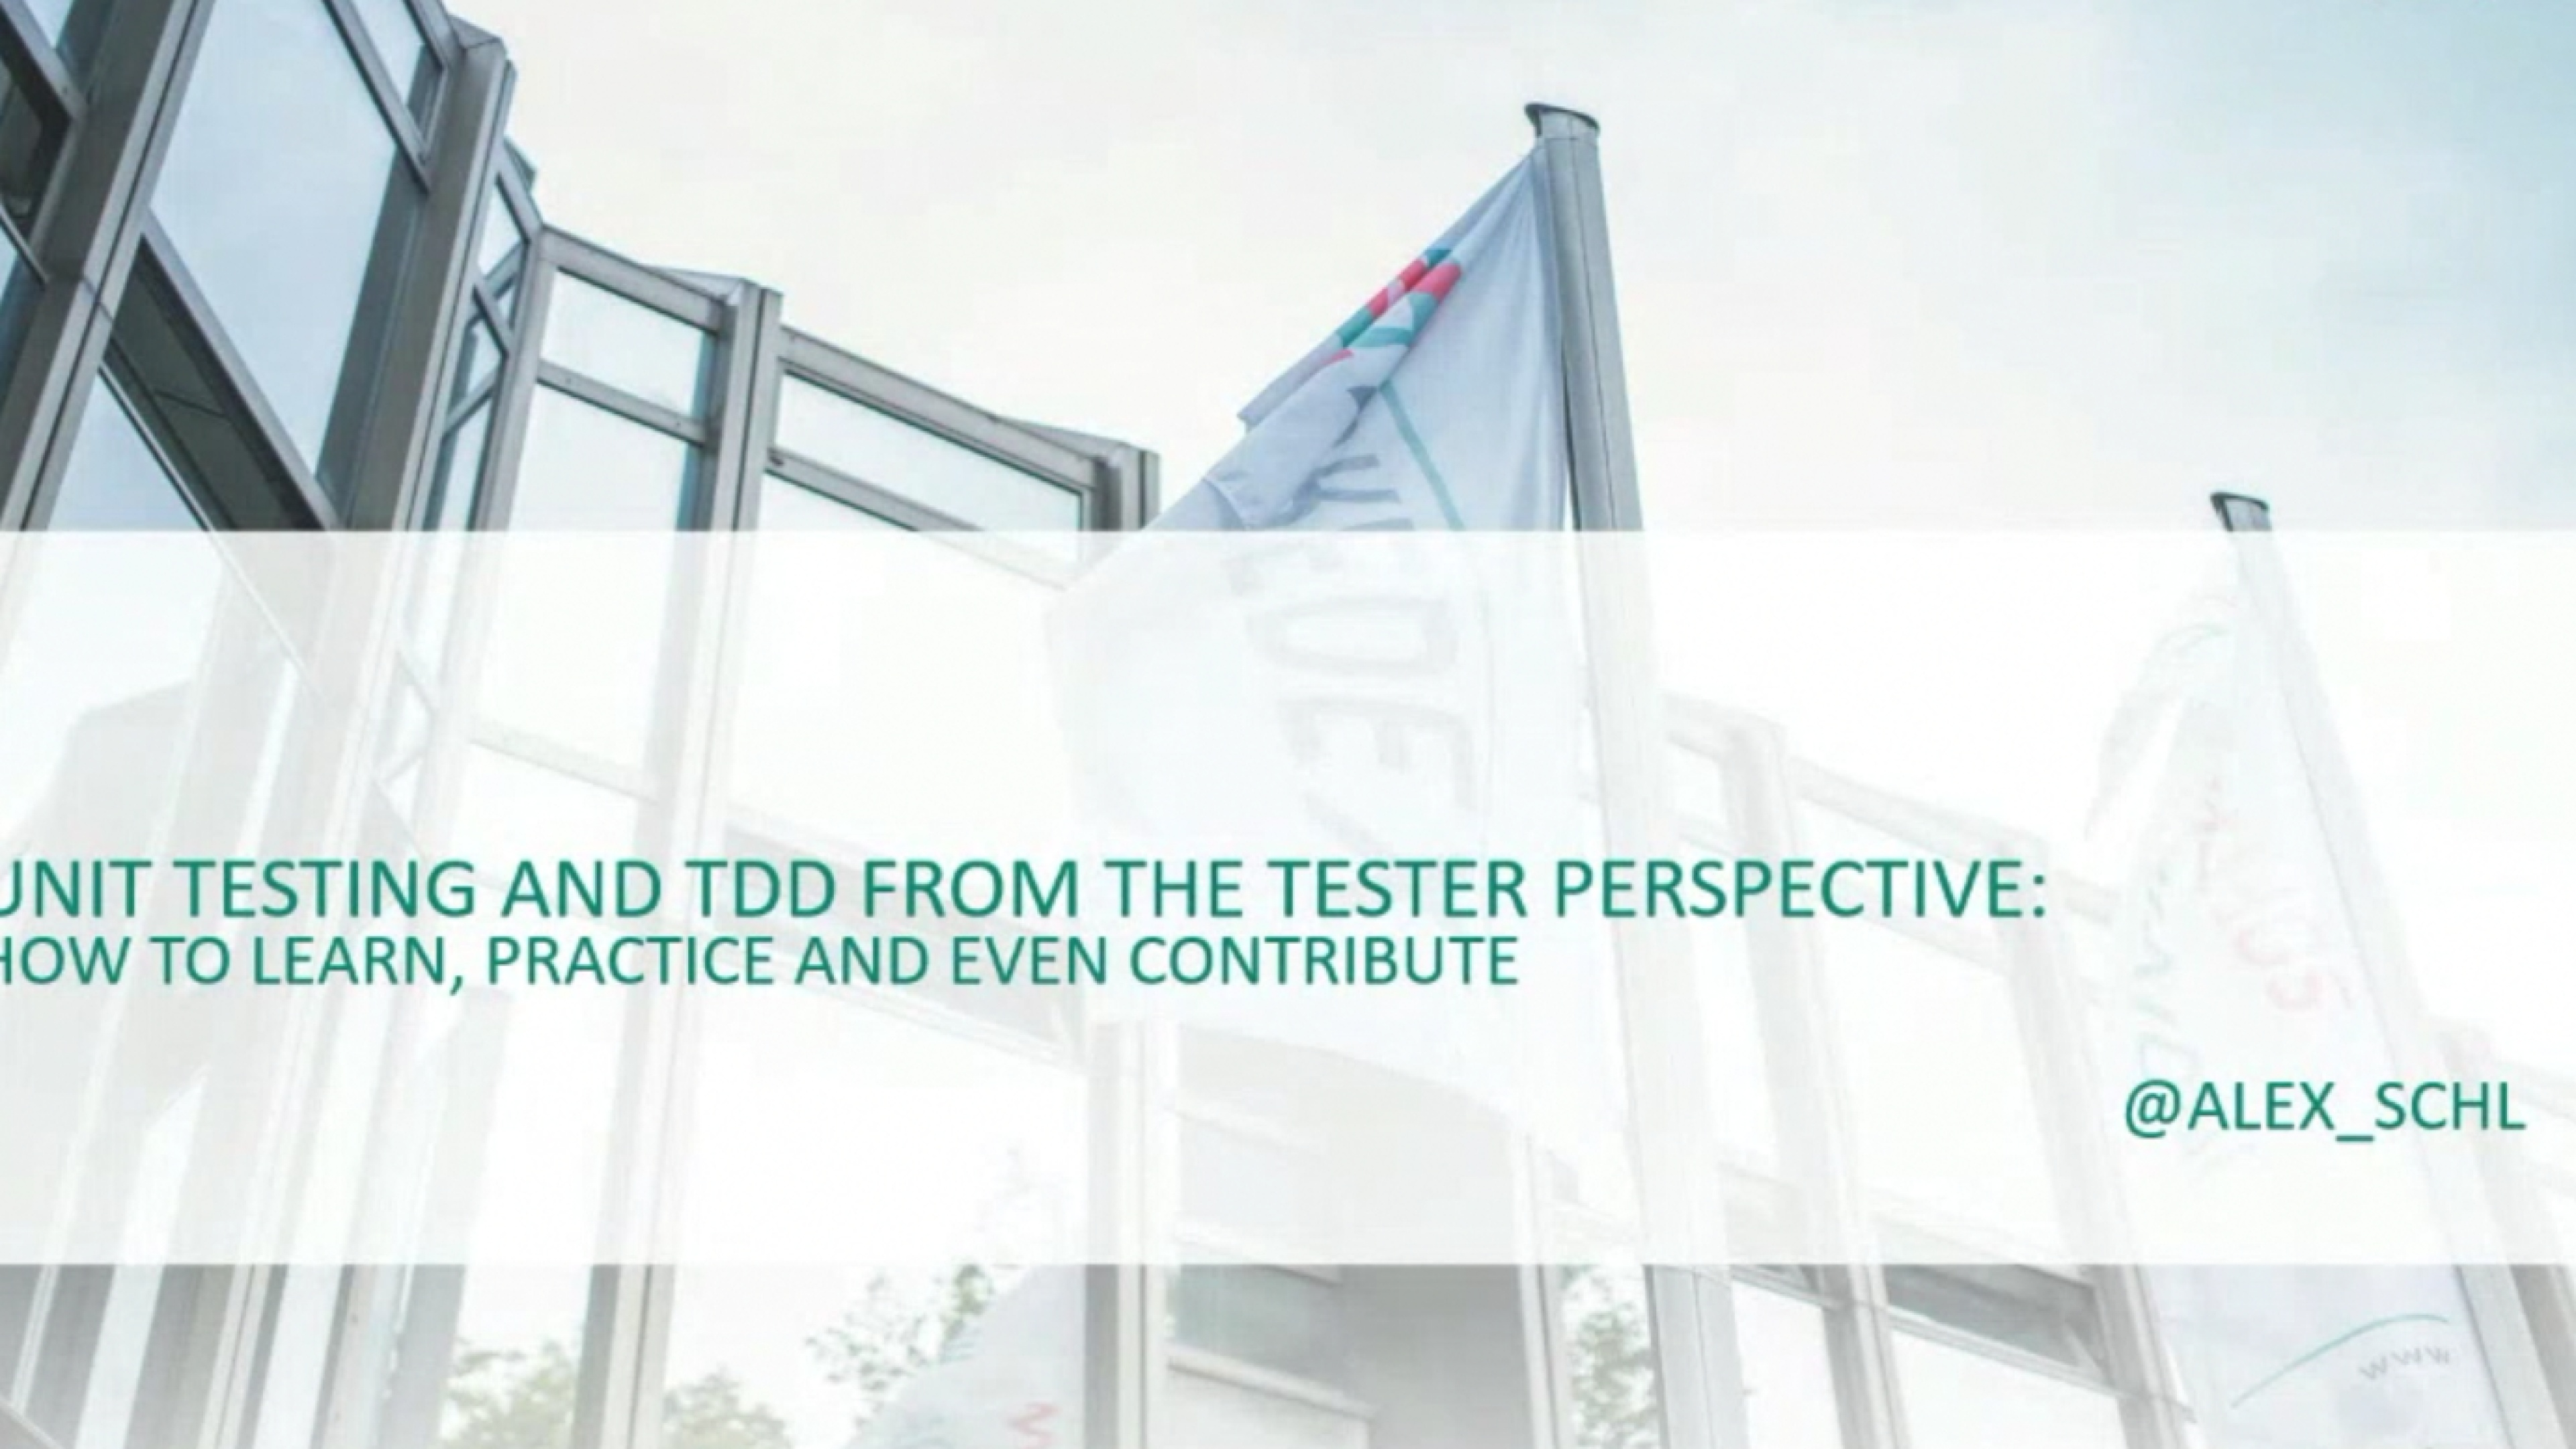 Unit Testing and TDD from the tester perspective - Alex Schladebeck